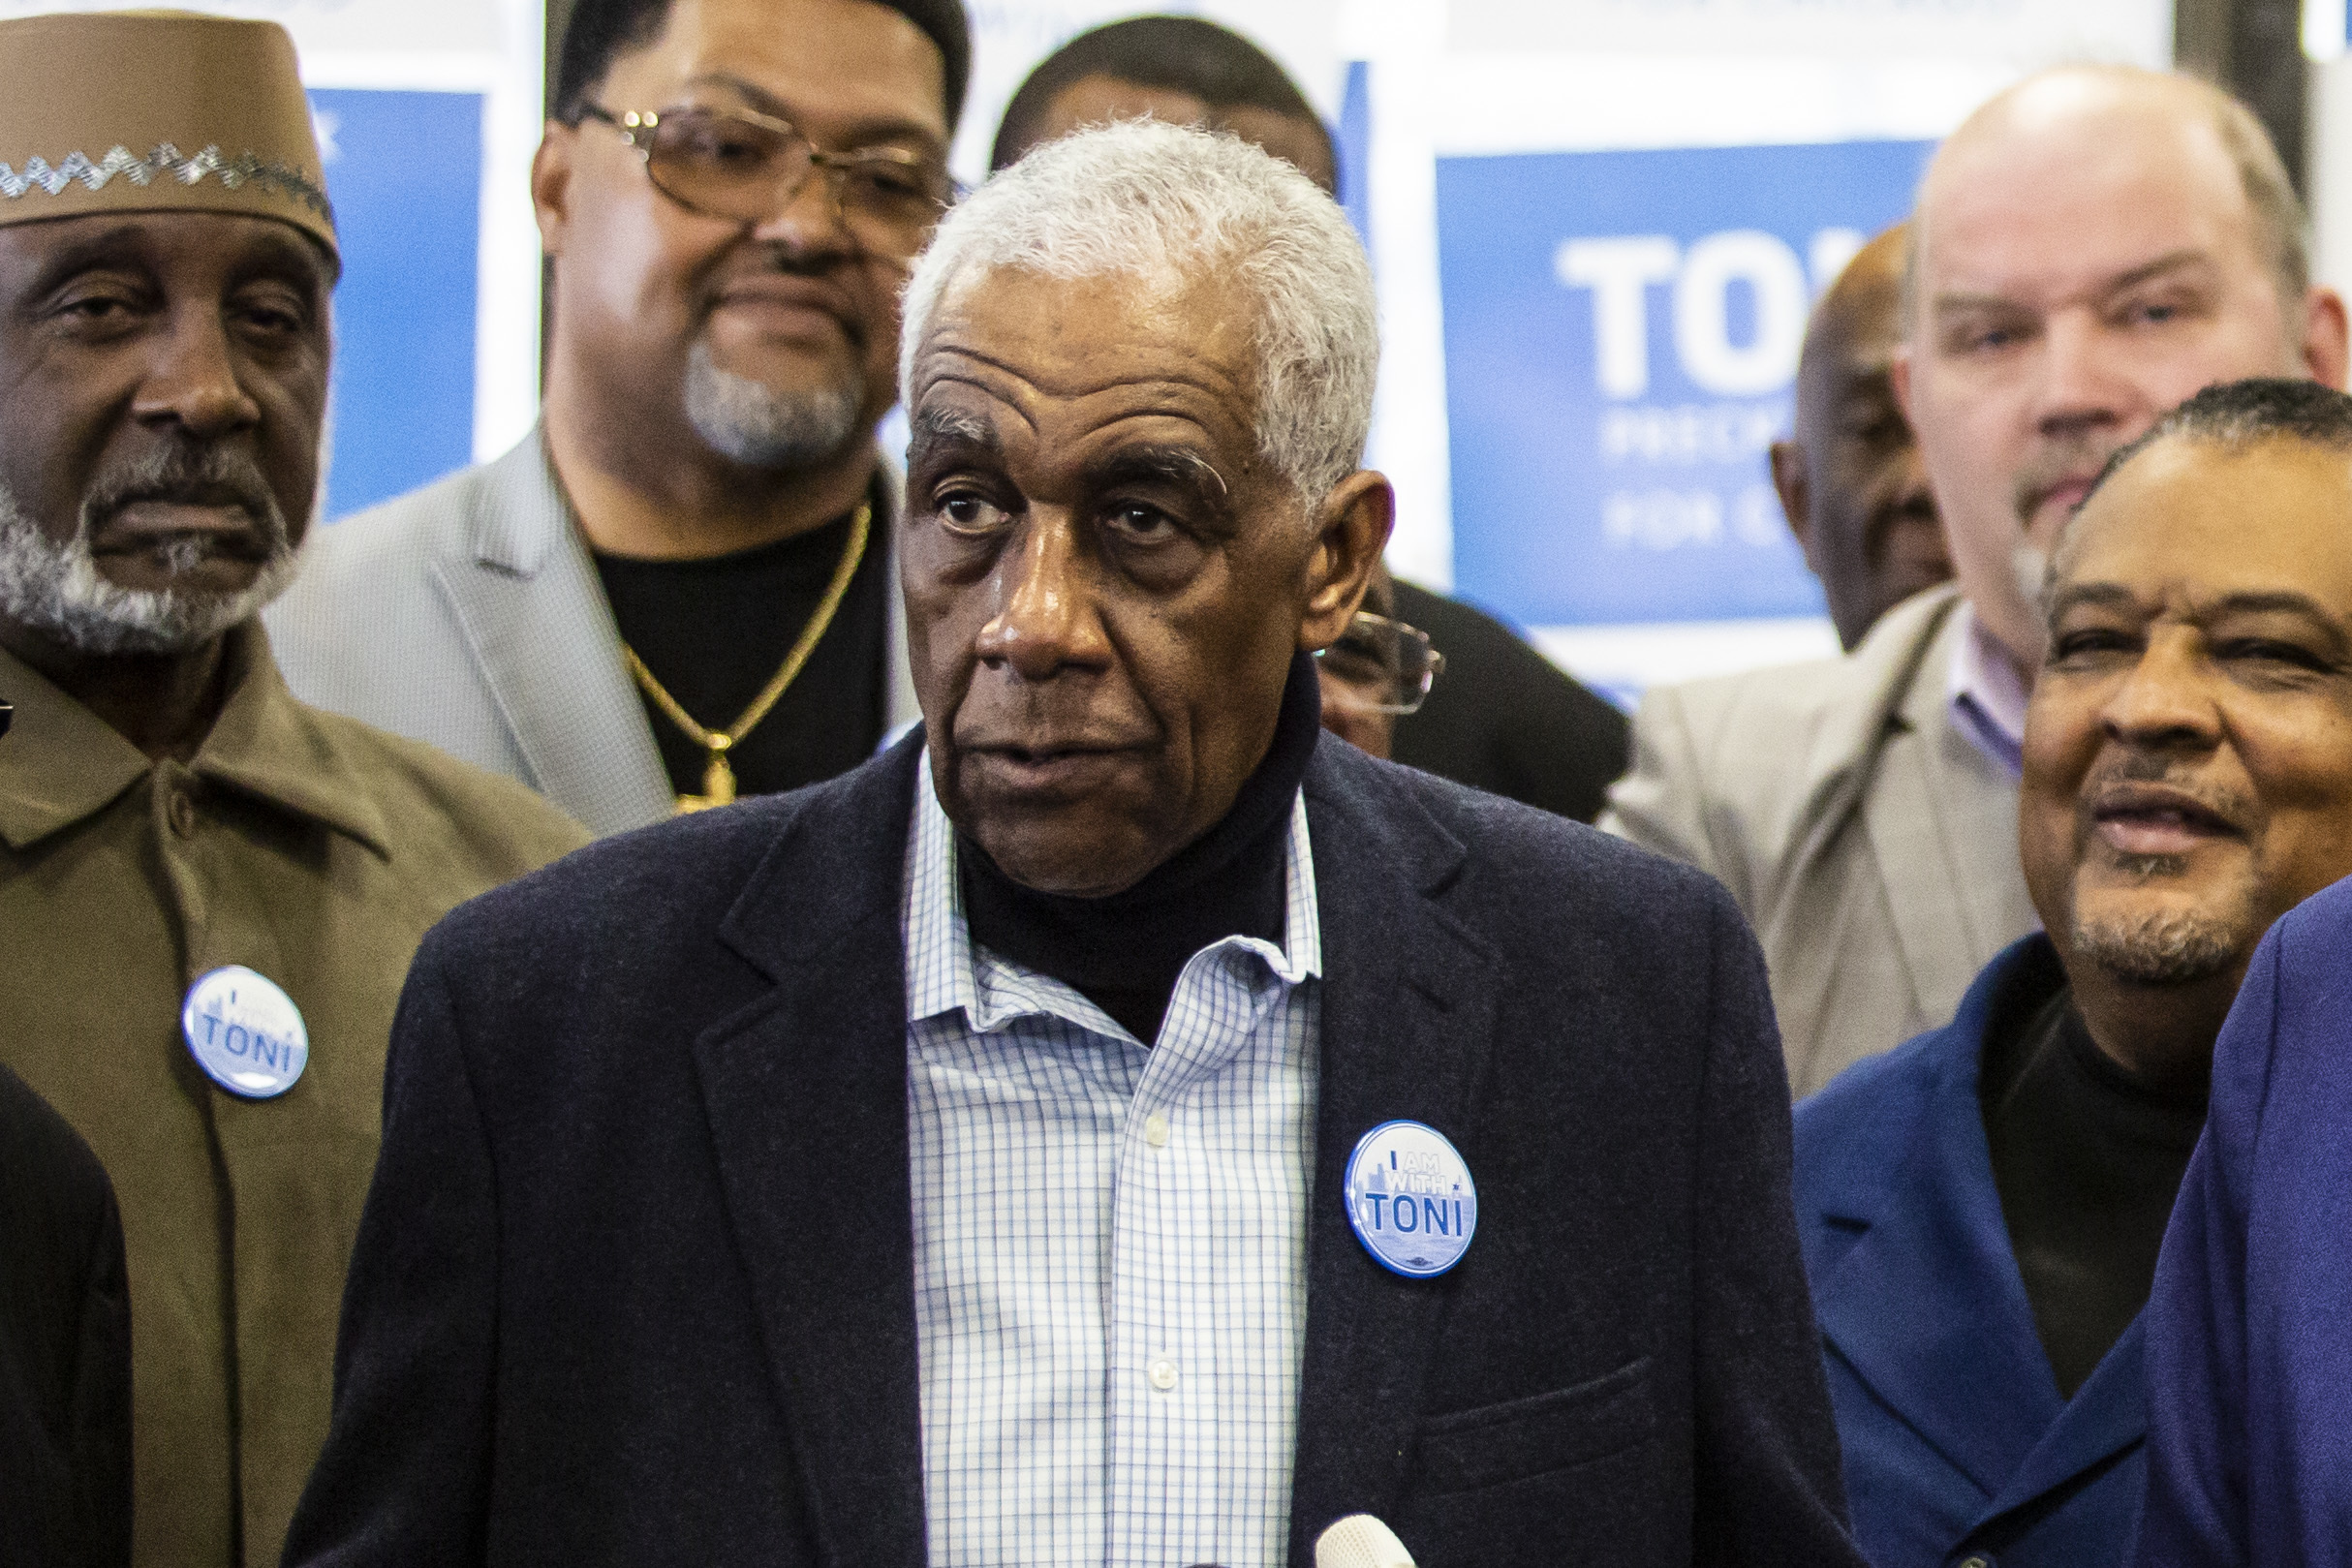 Rev. Leon Finney at a political event earlier this year.